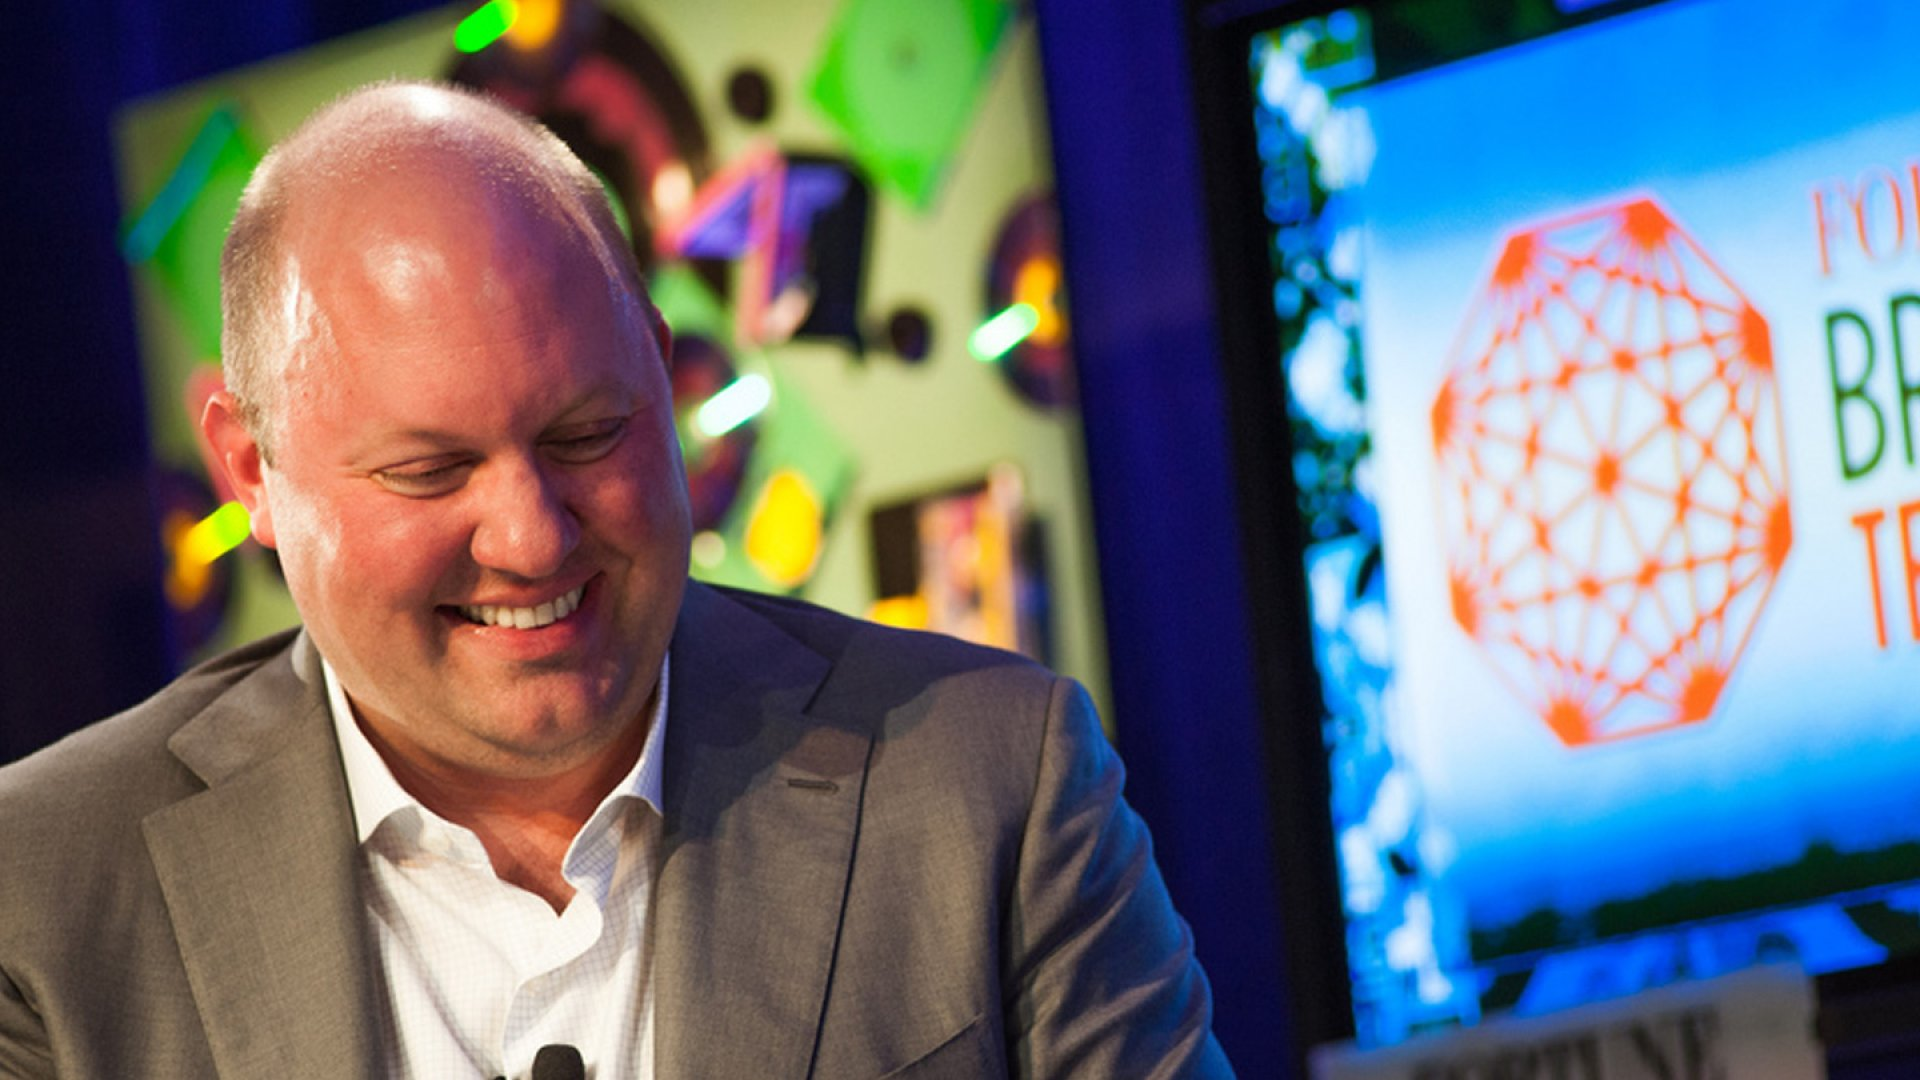 Marc Andreessen Wants You to Come Up With Better Job Descriptions